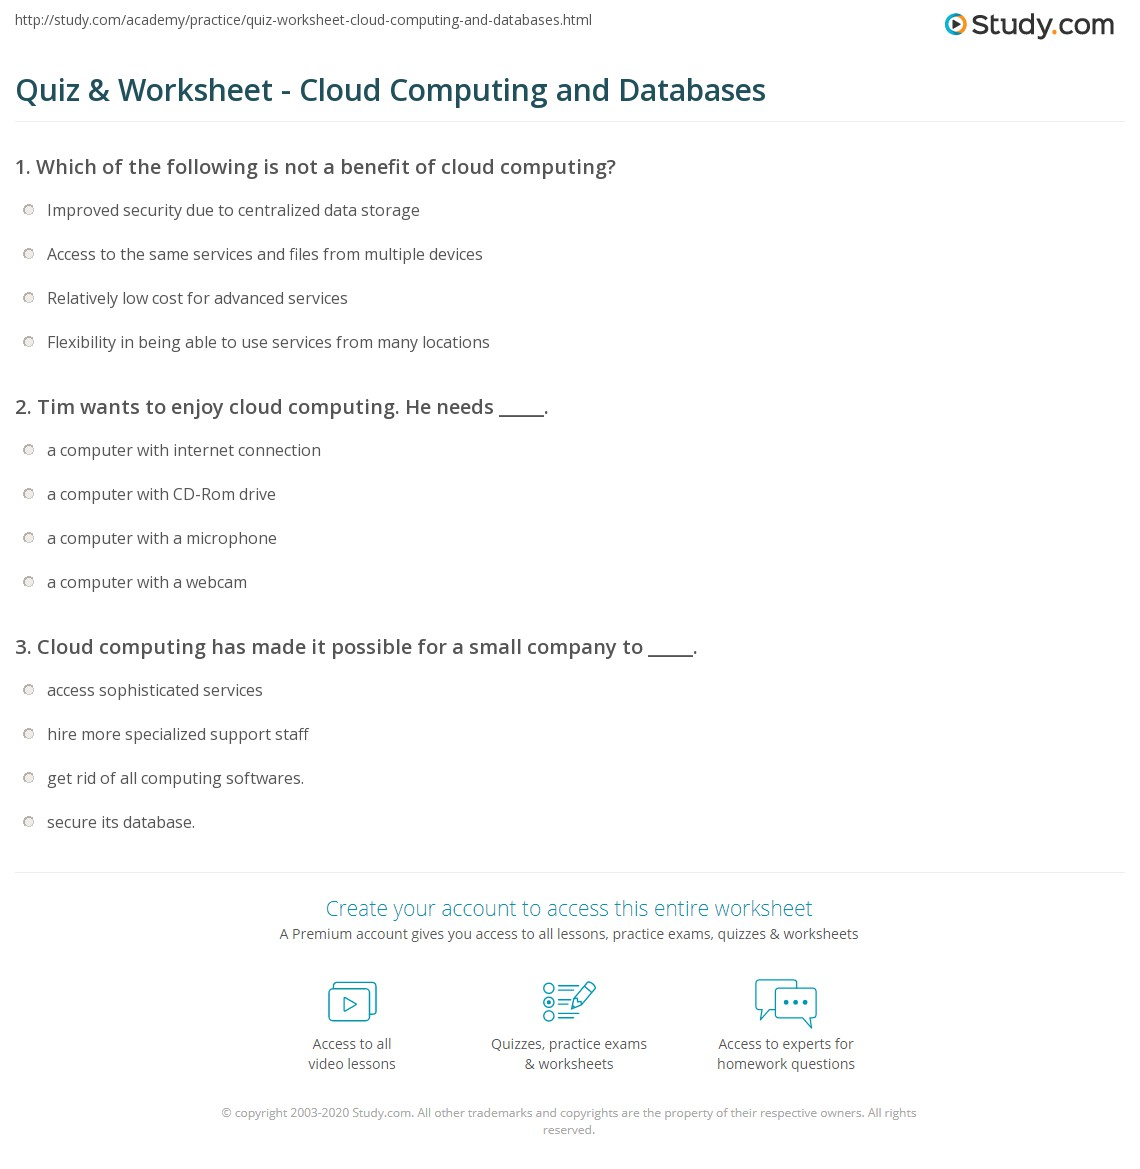 Quiz Worksheet Cloud Computing And Databases Study Com